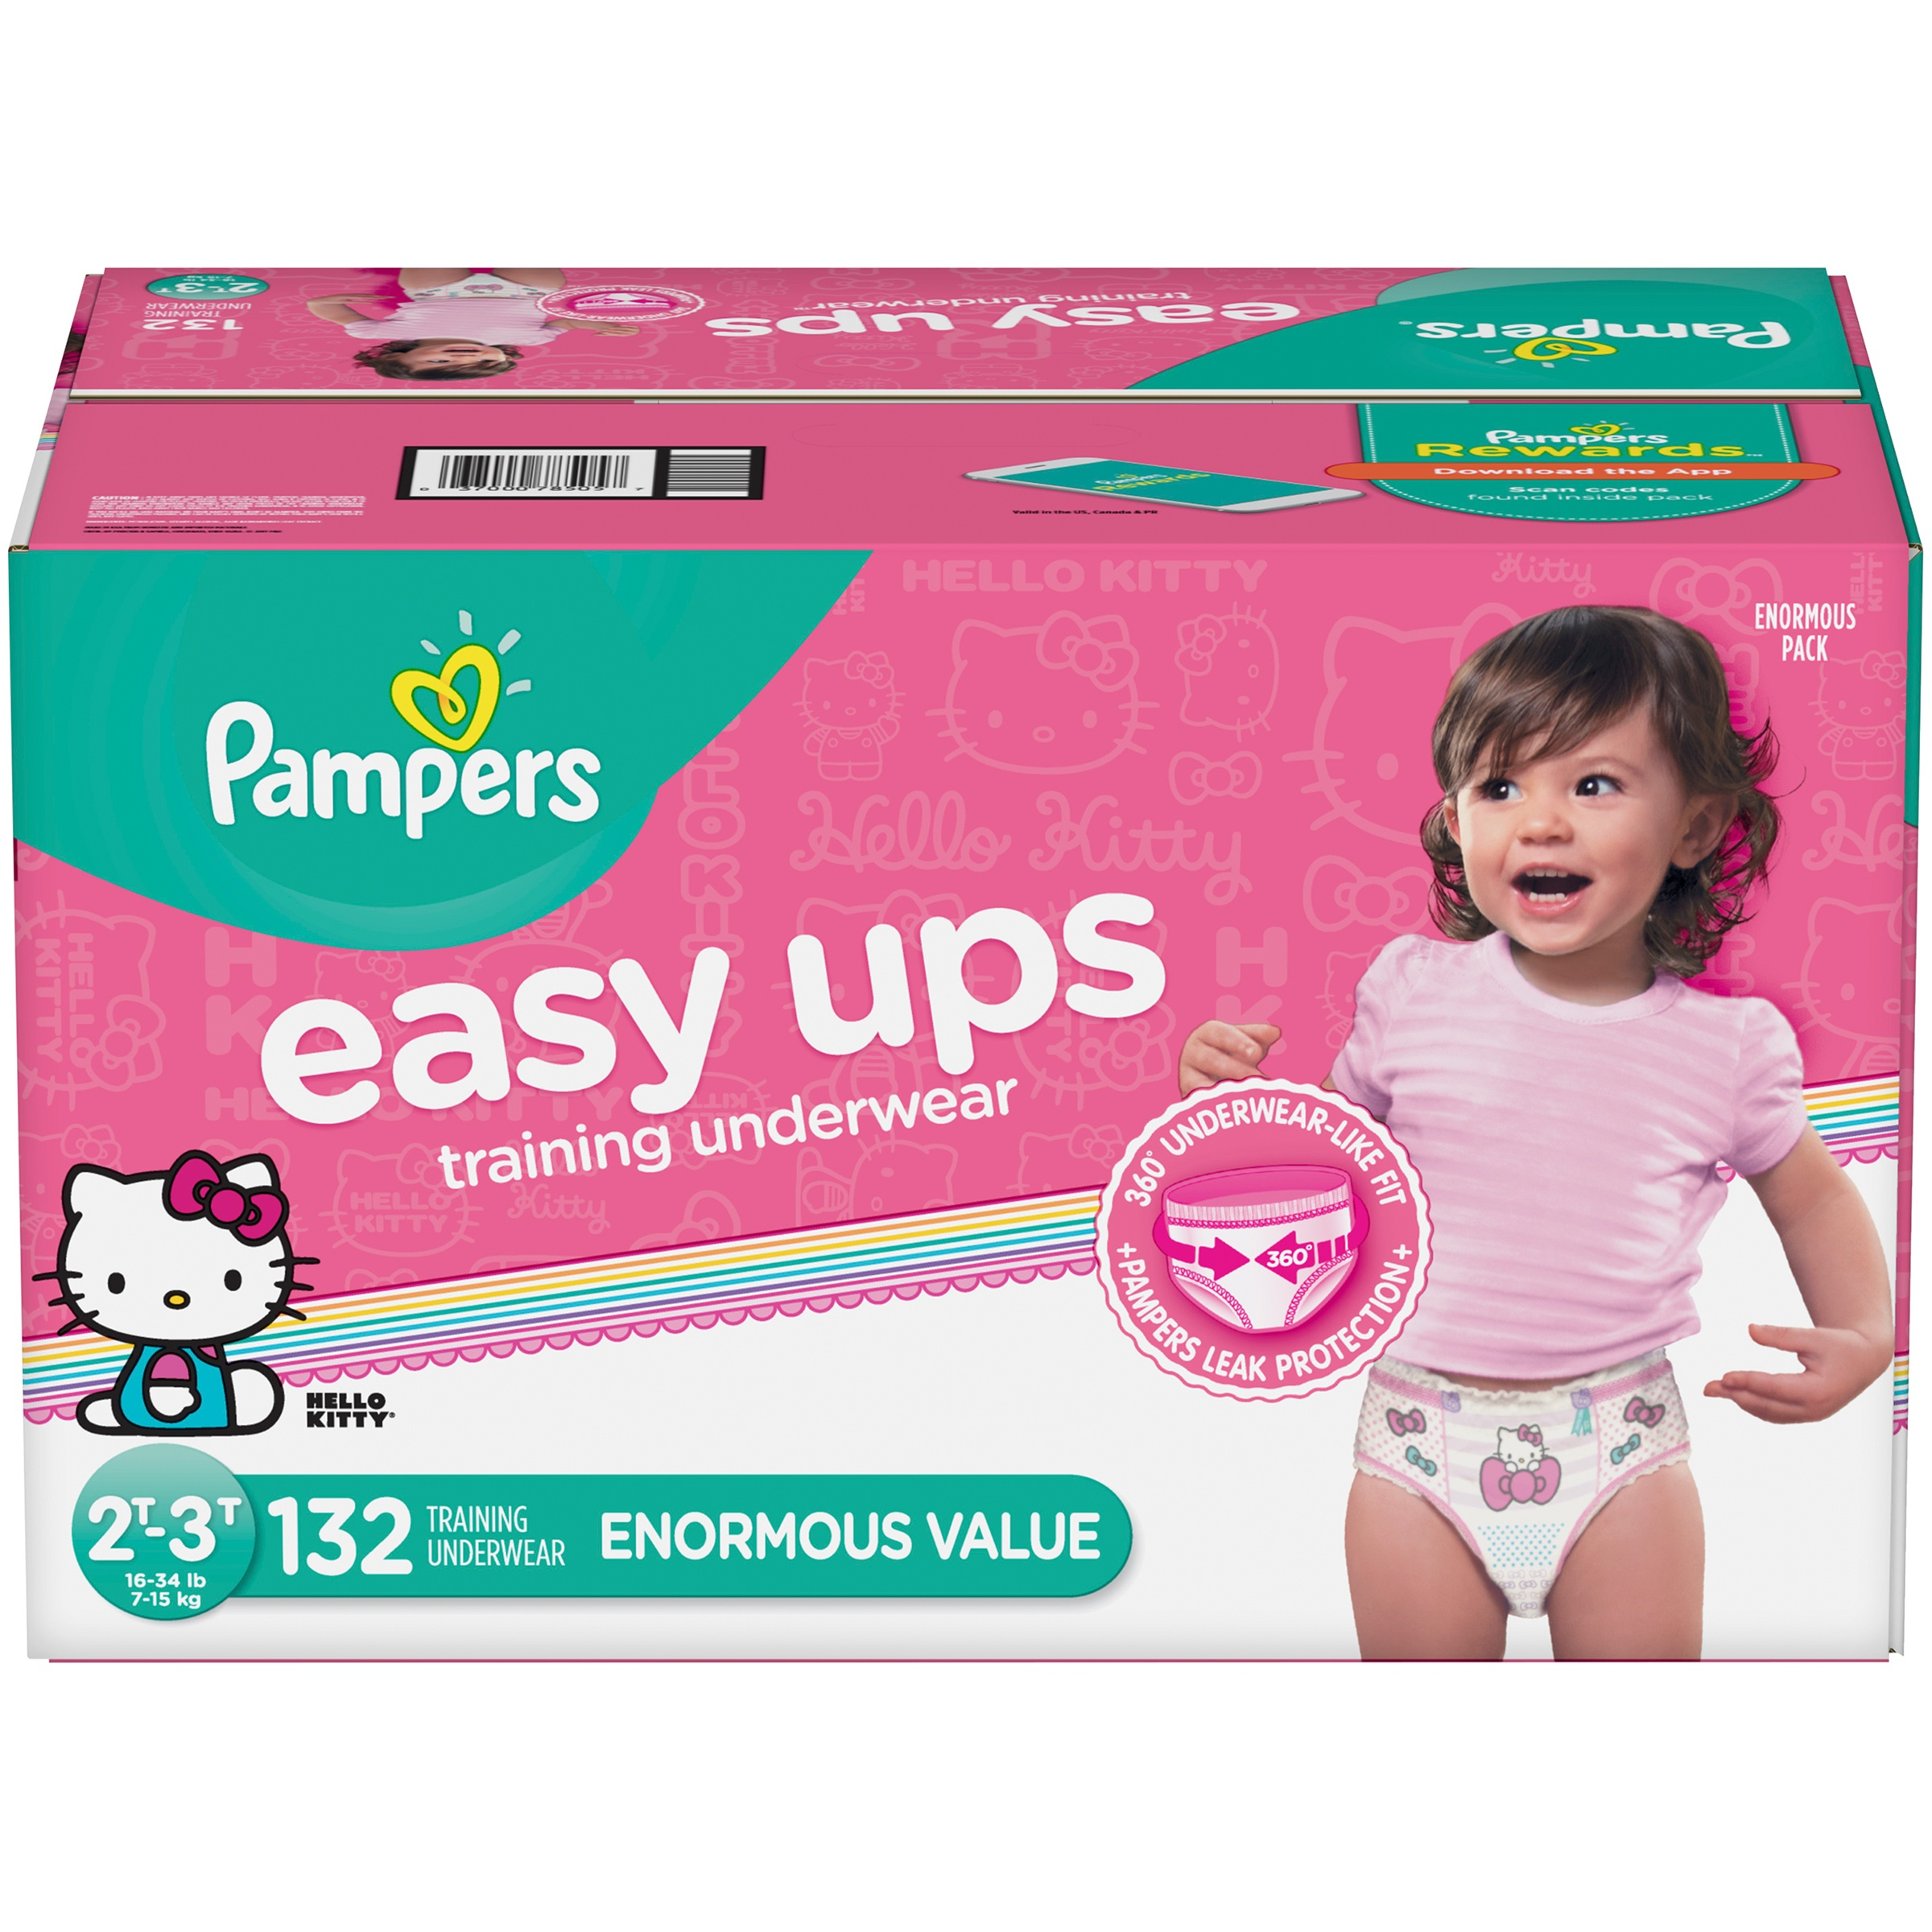 Pampers Easy Ups Training Underwear Girls, Size 2T-3T, 132 Pants